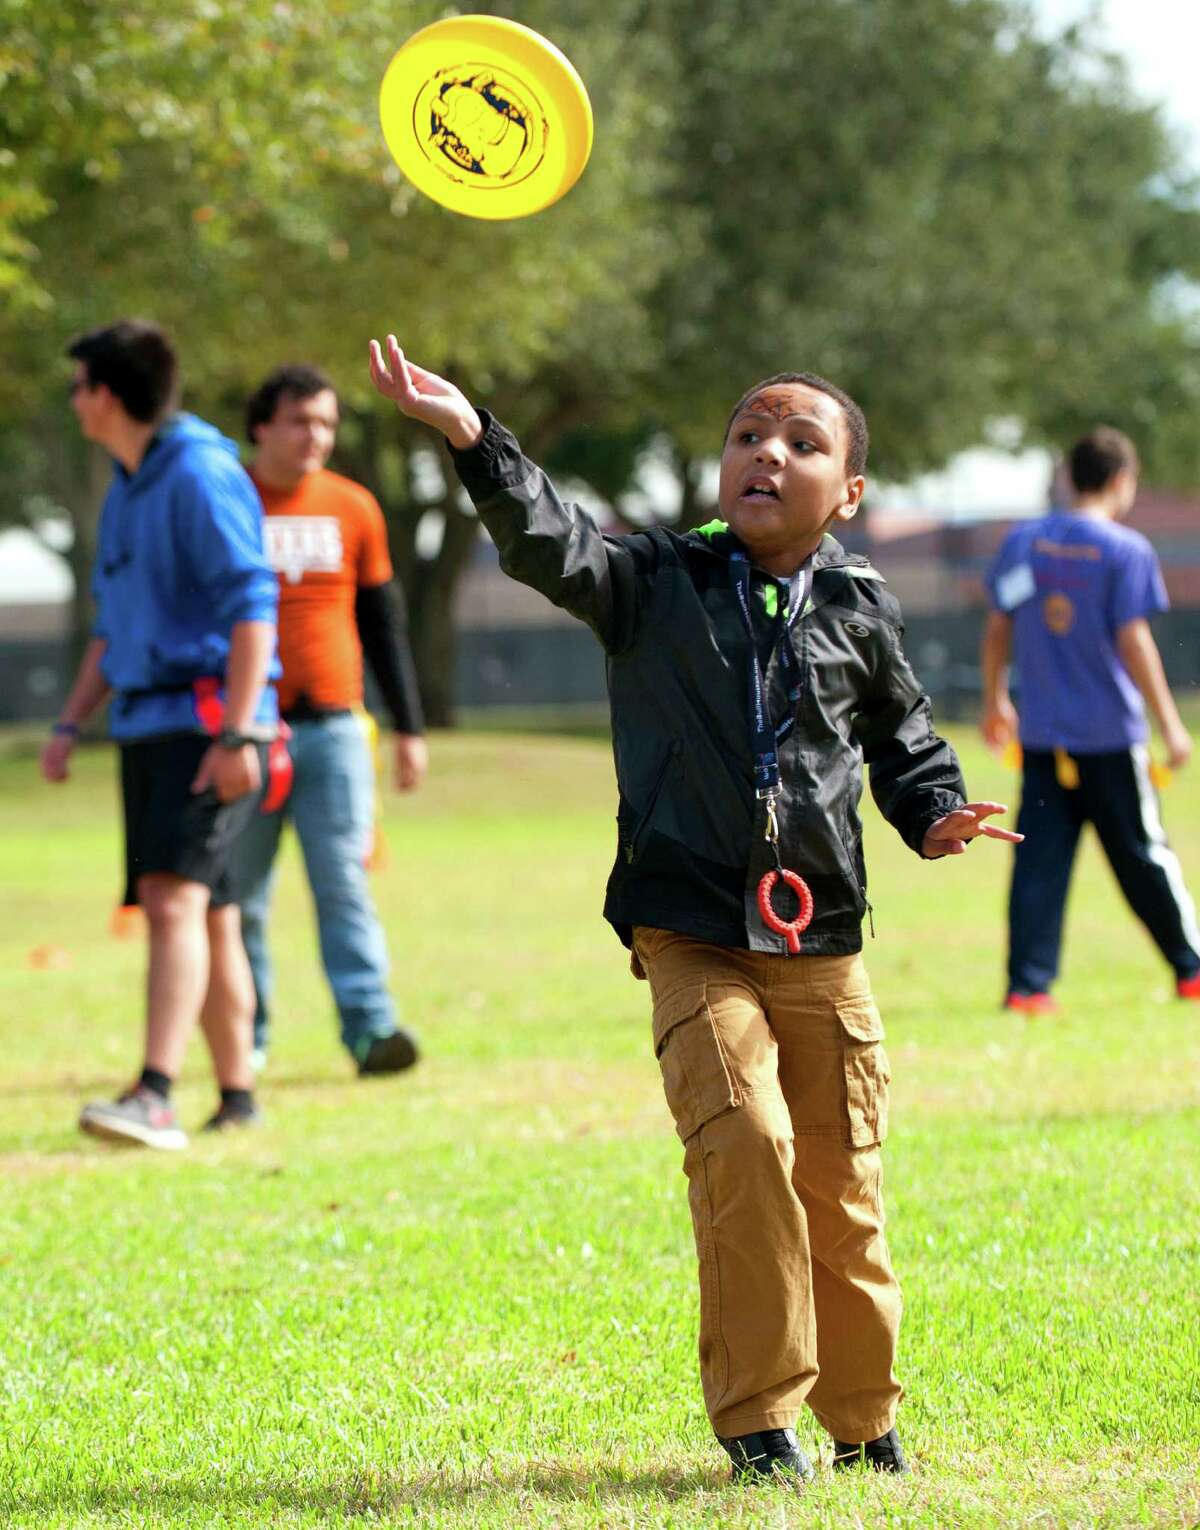 Cameron, 6, tosses a disc while playing with other children in Texas Child Protective Services at an adoption festival sponsored by the Pearland Rotary on Saturday, Nov. 8, 2014 at the Silverlake Clubhouse in Pearland, Texas. The event was part of National Adoption Month.